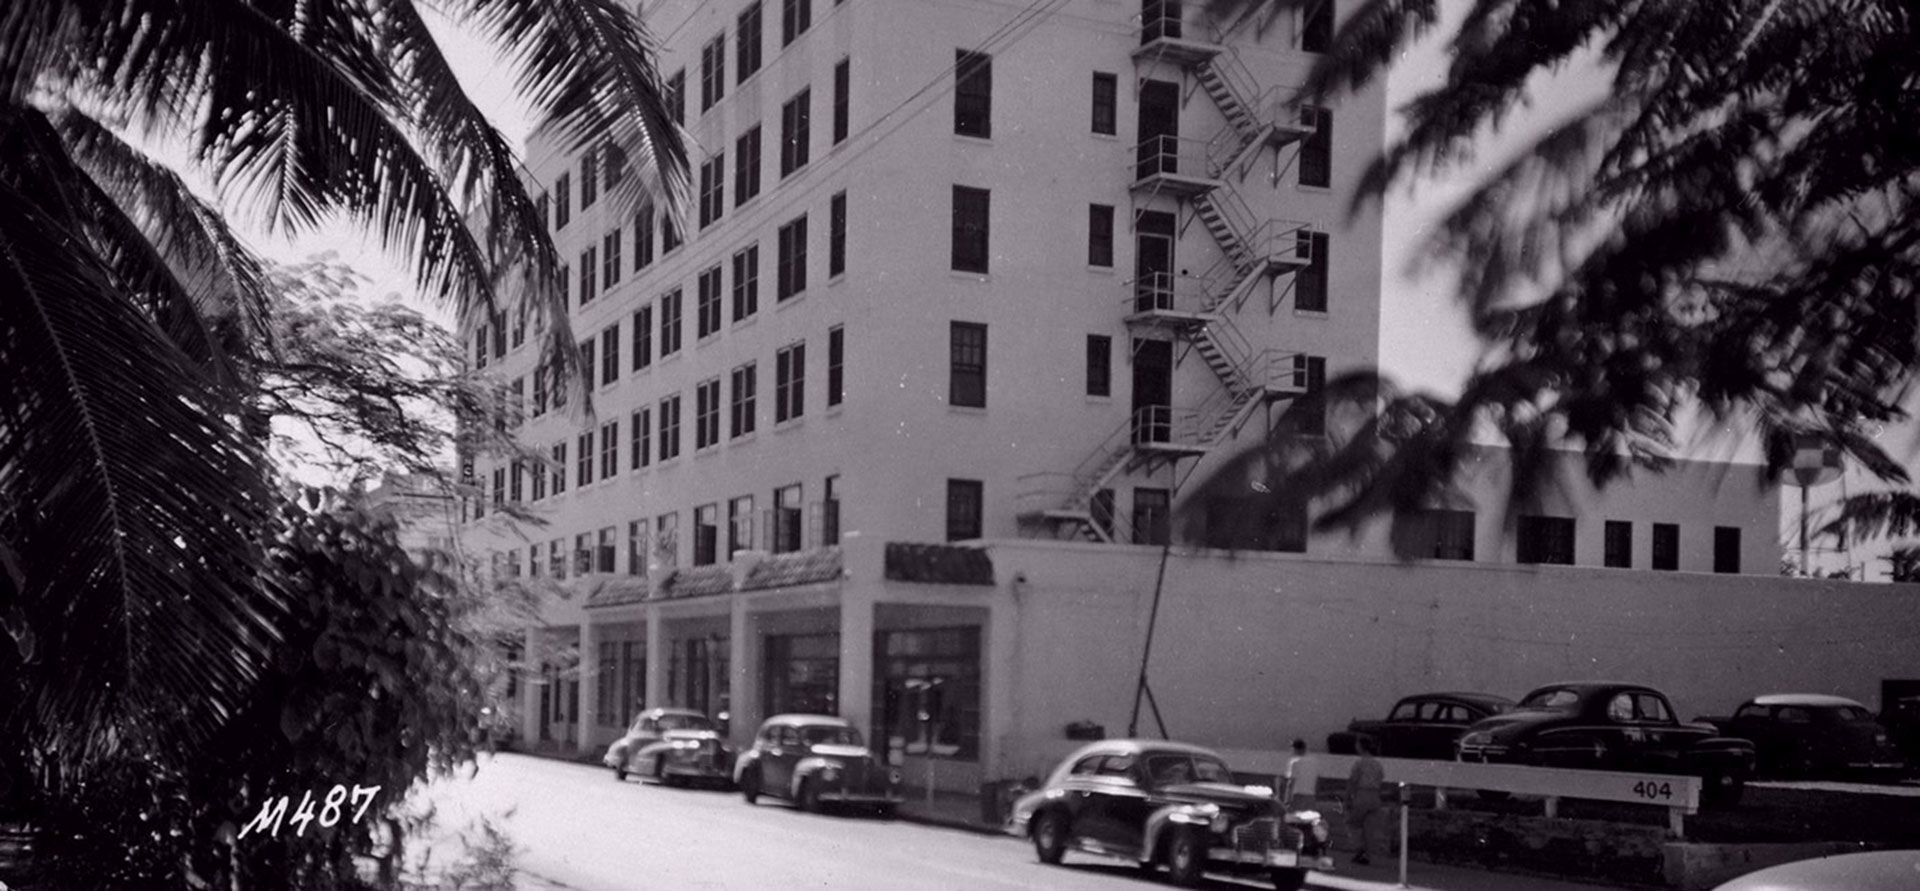 Key West Florida Hotel History